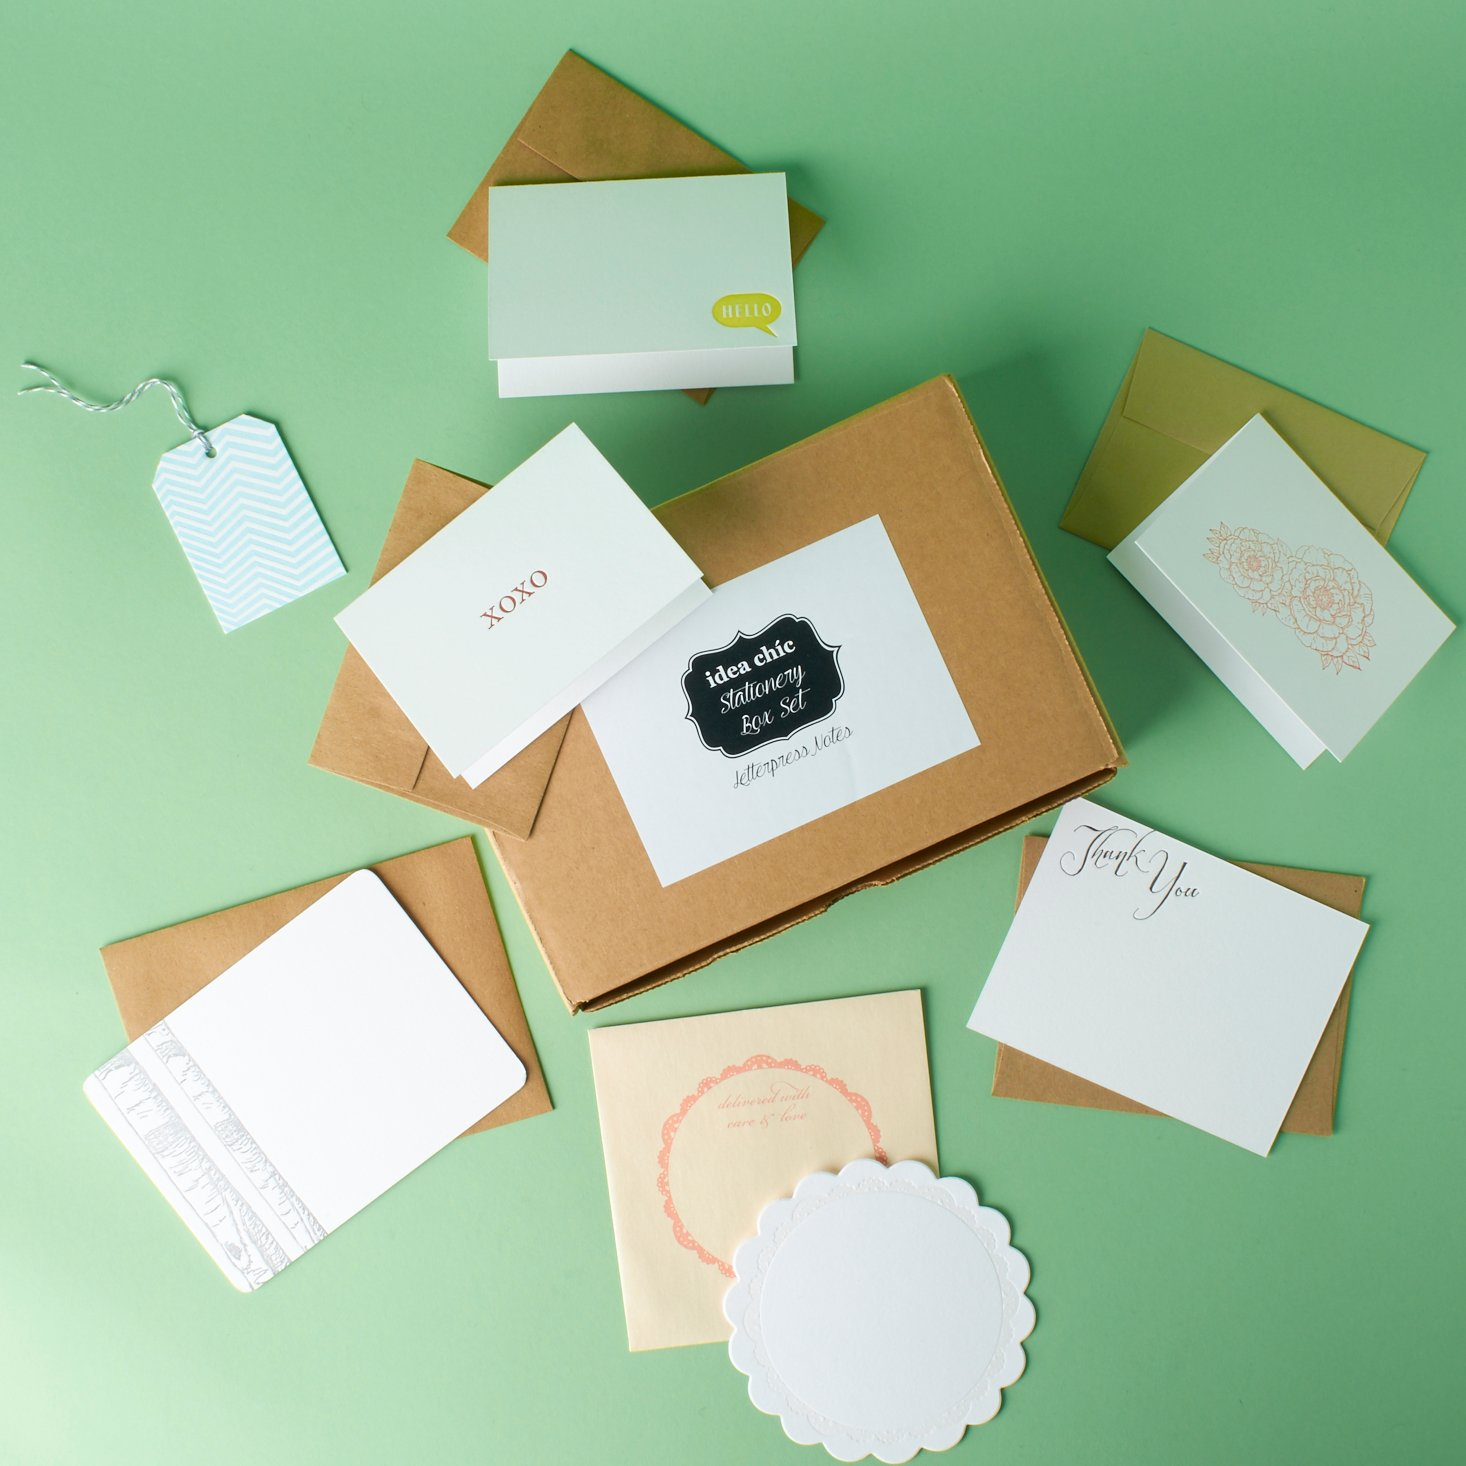 Read our review of the December Idea Chic Stationery Box!